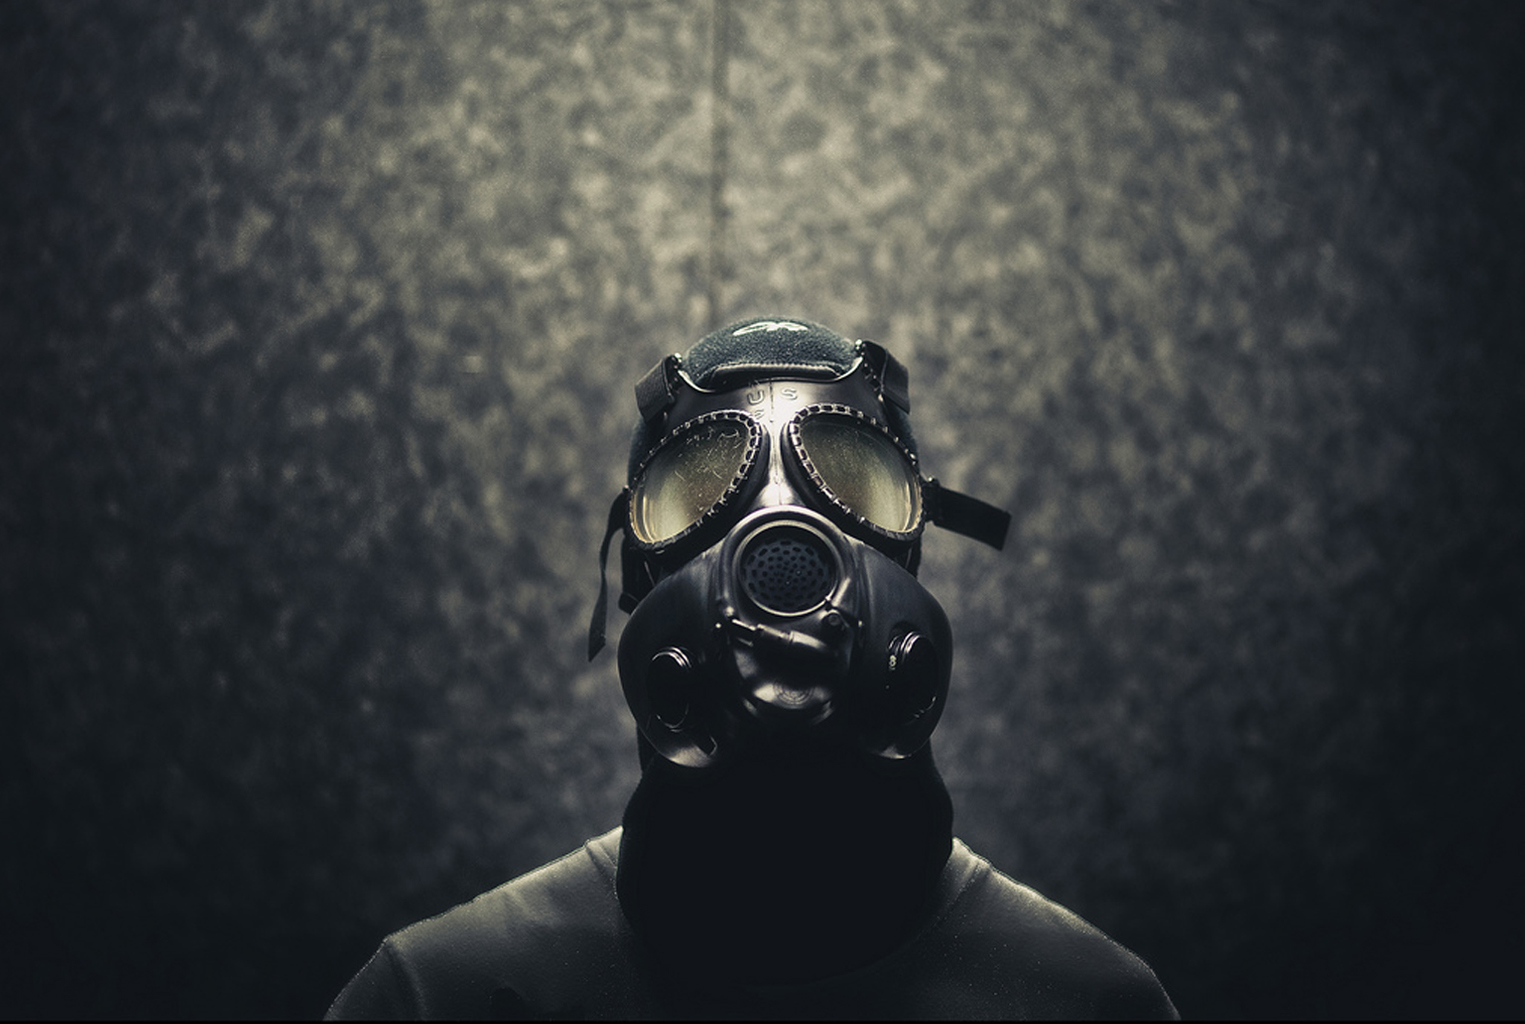 military gas masks HD Wallpaper